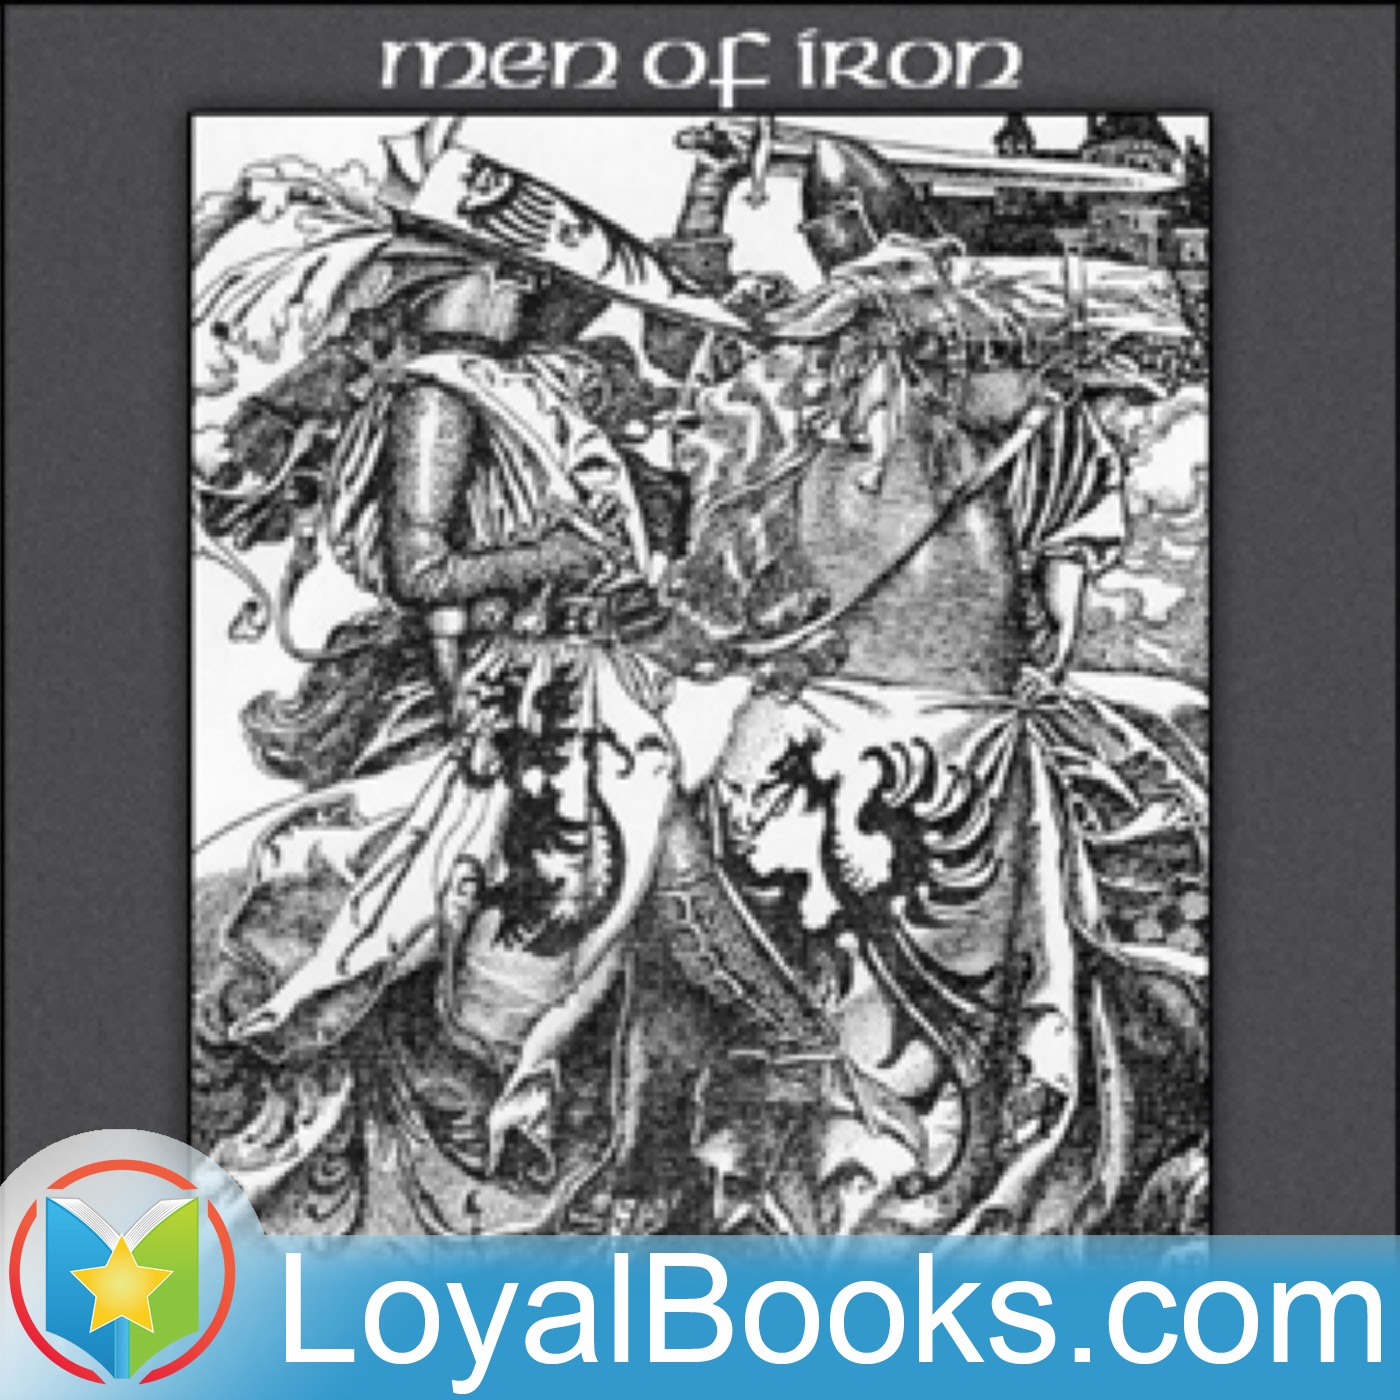 <![CDATA[Men of Iron by Howard Pyle]]>